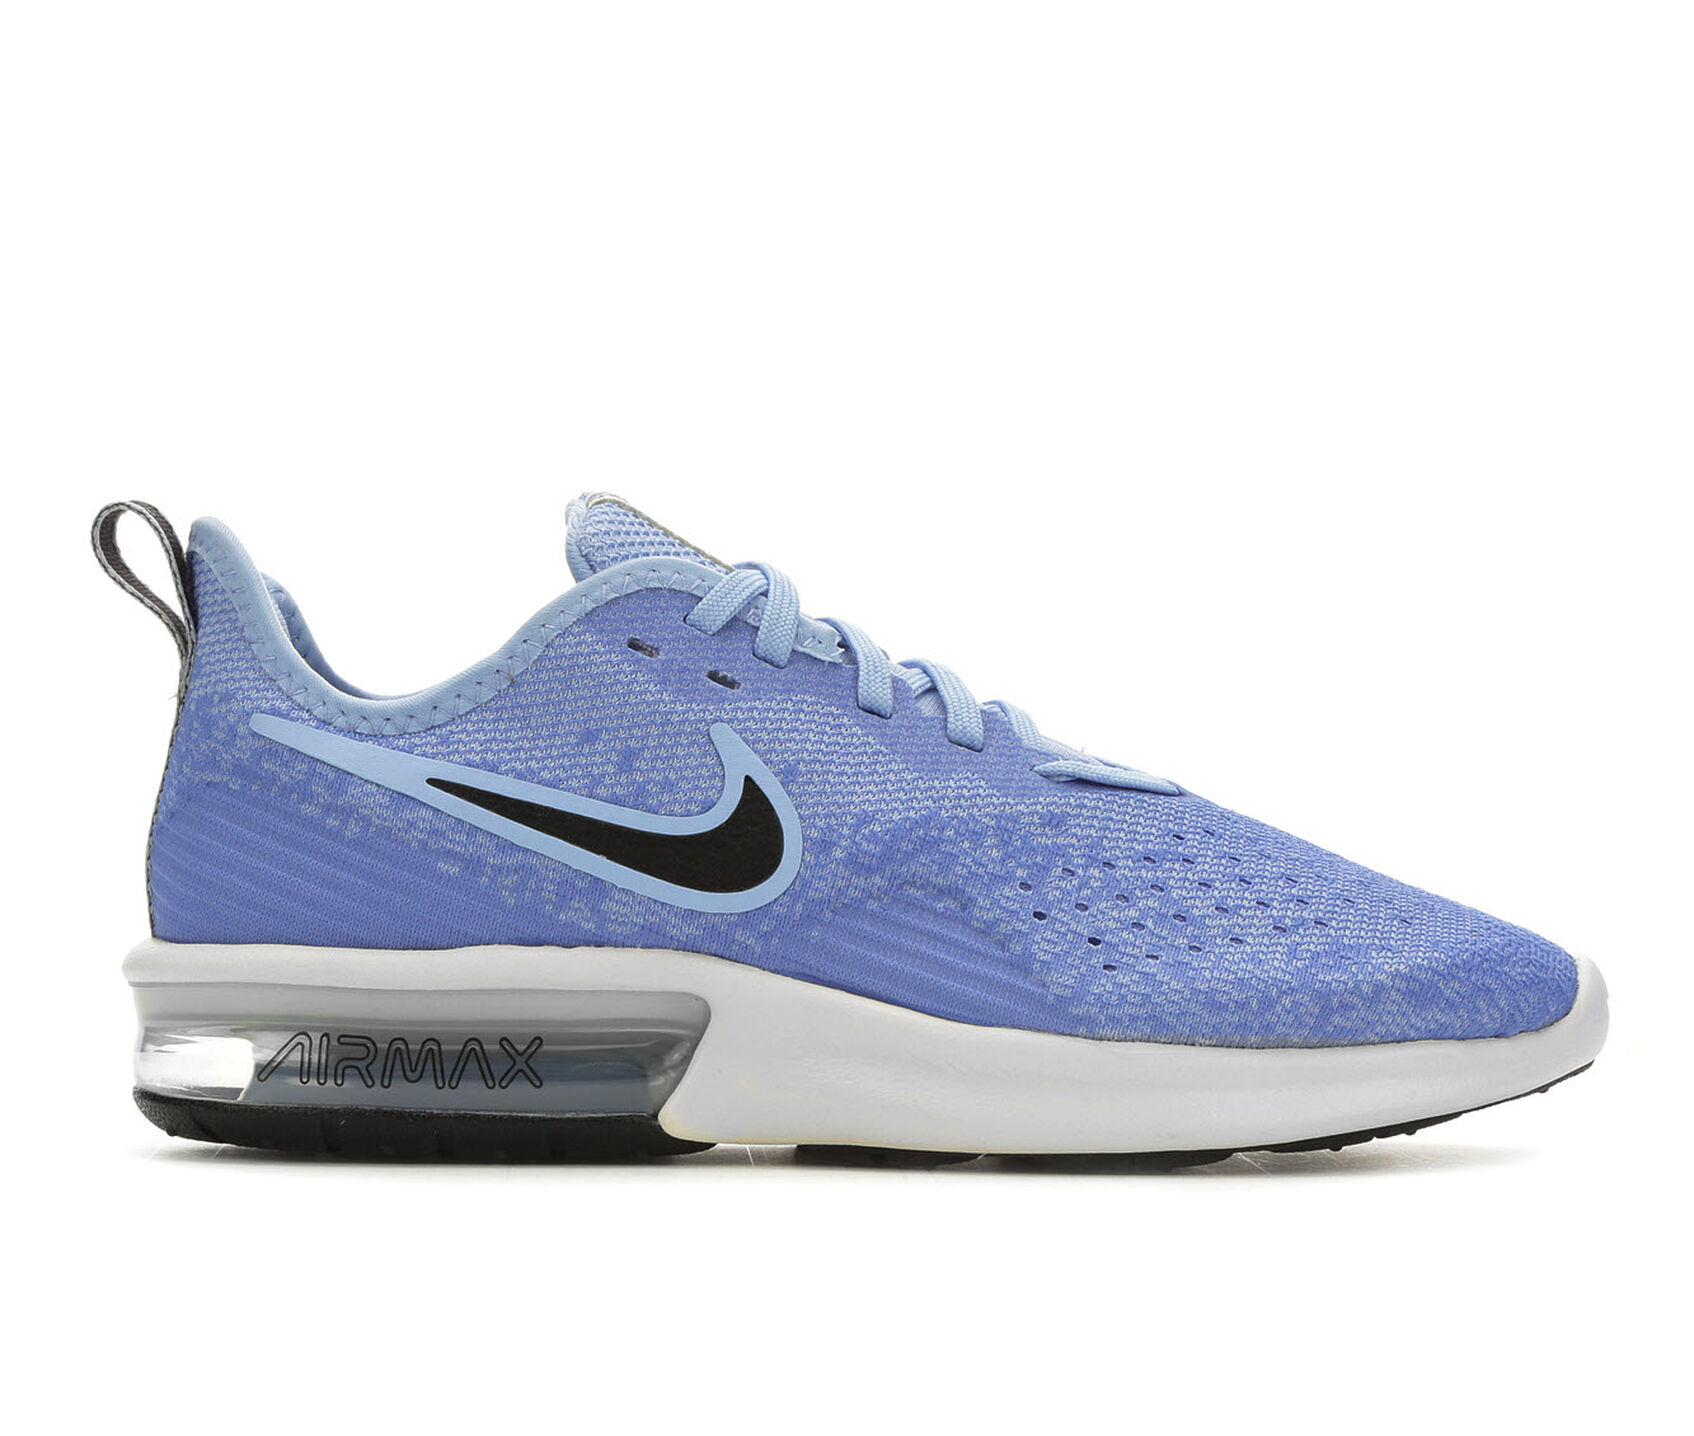 00555d7646e ... Nike Air Max Sequent 4 Running Shoes. Previous